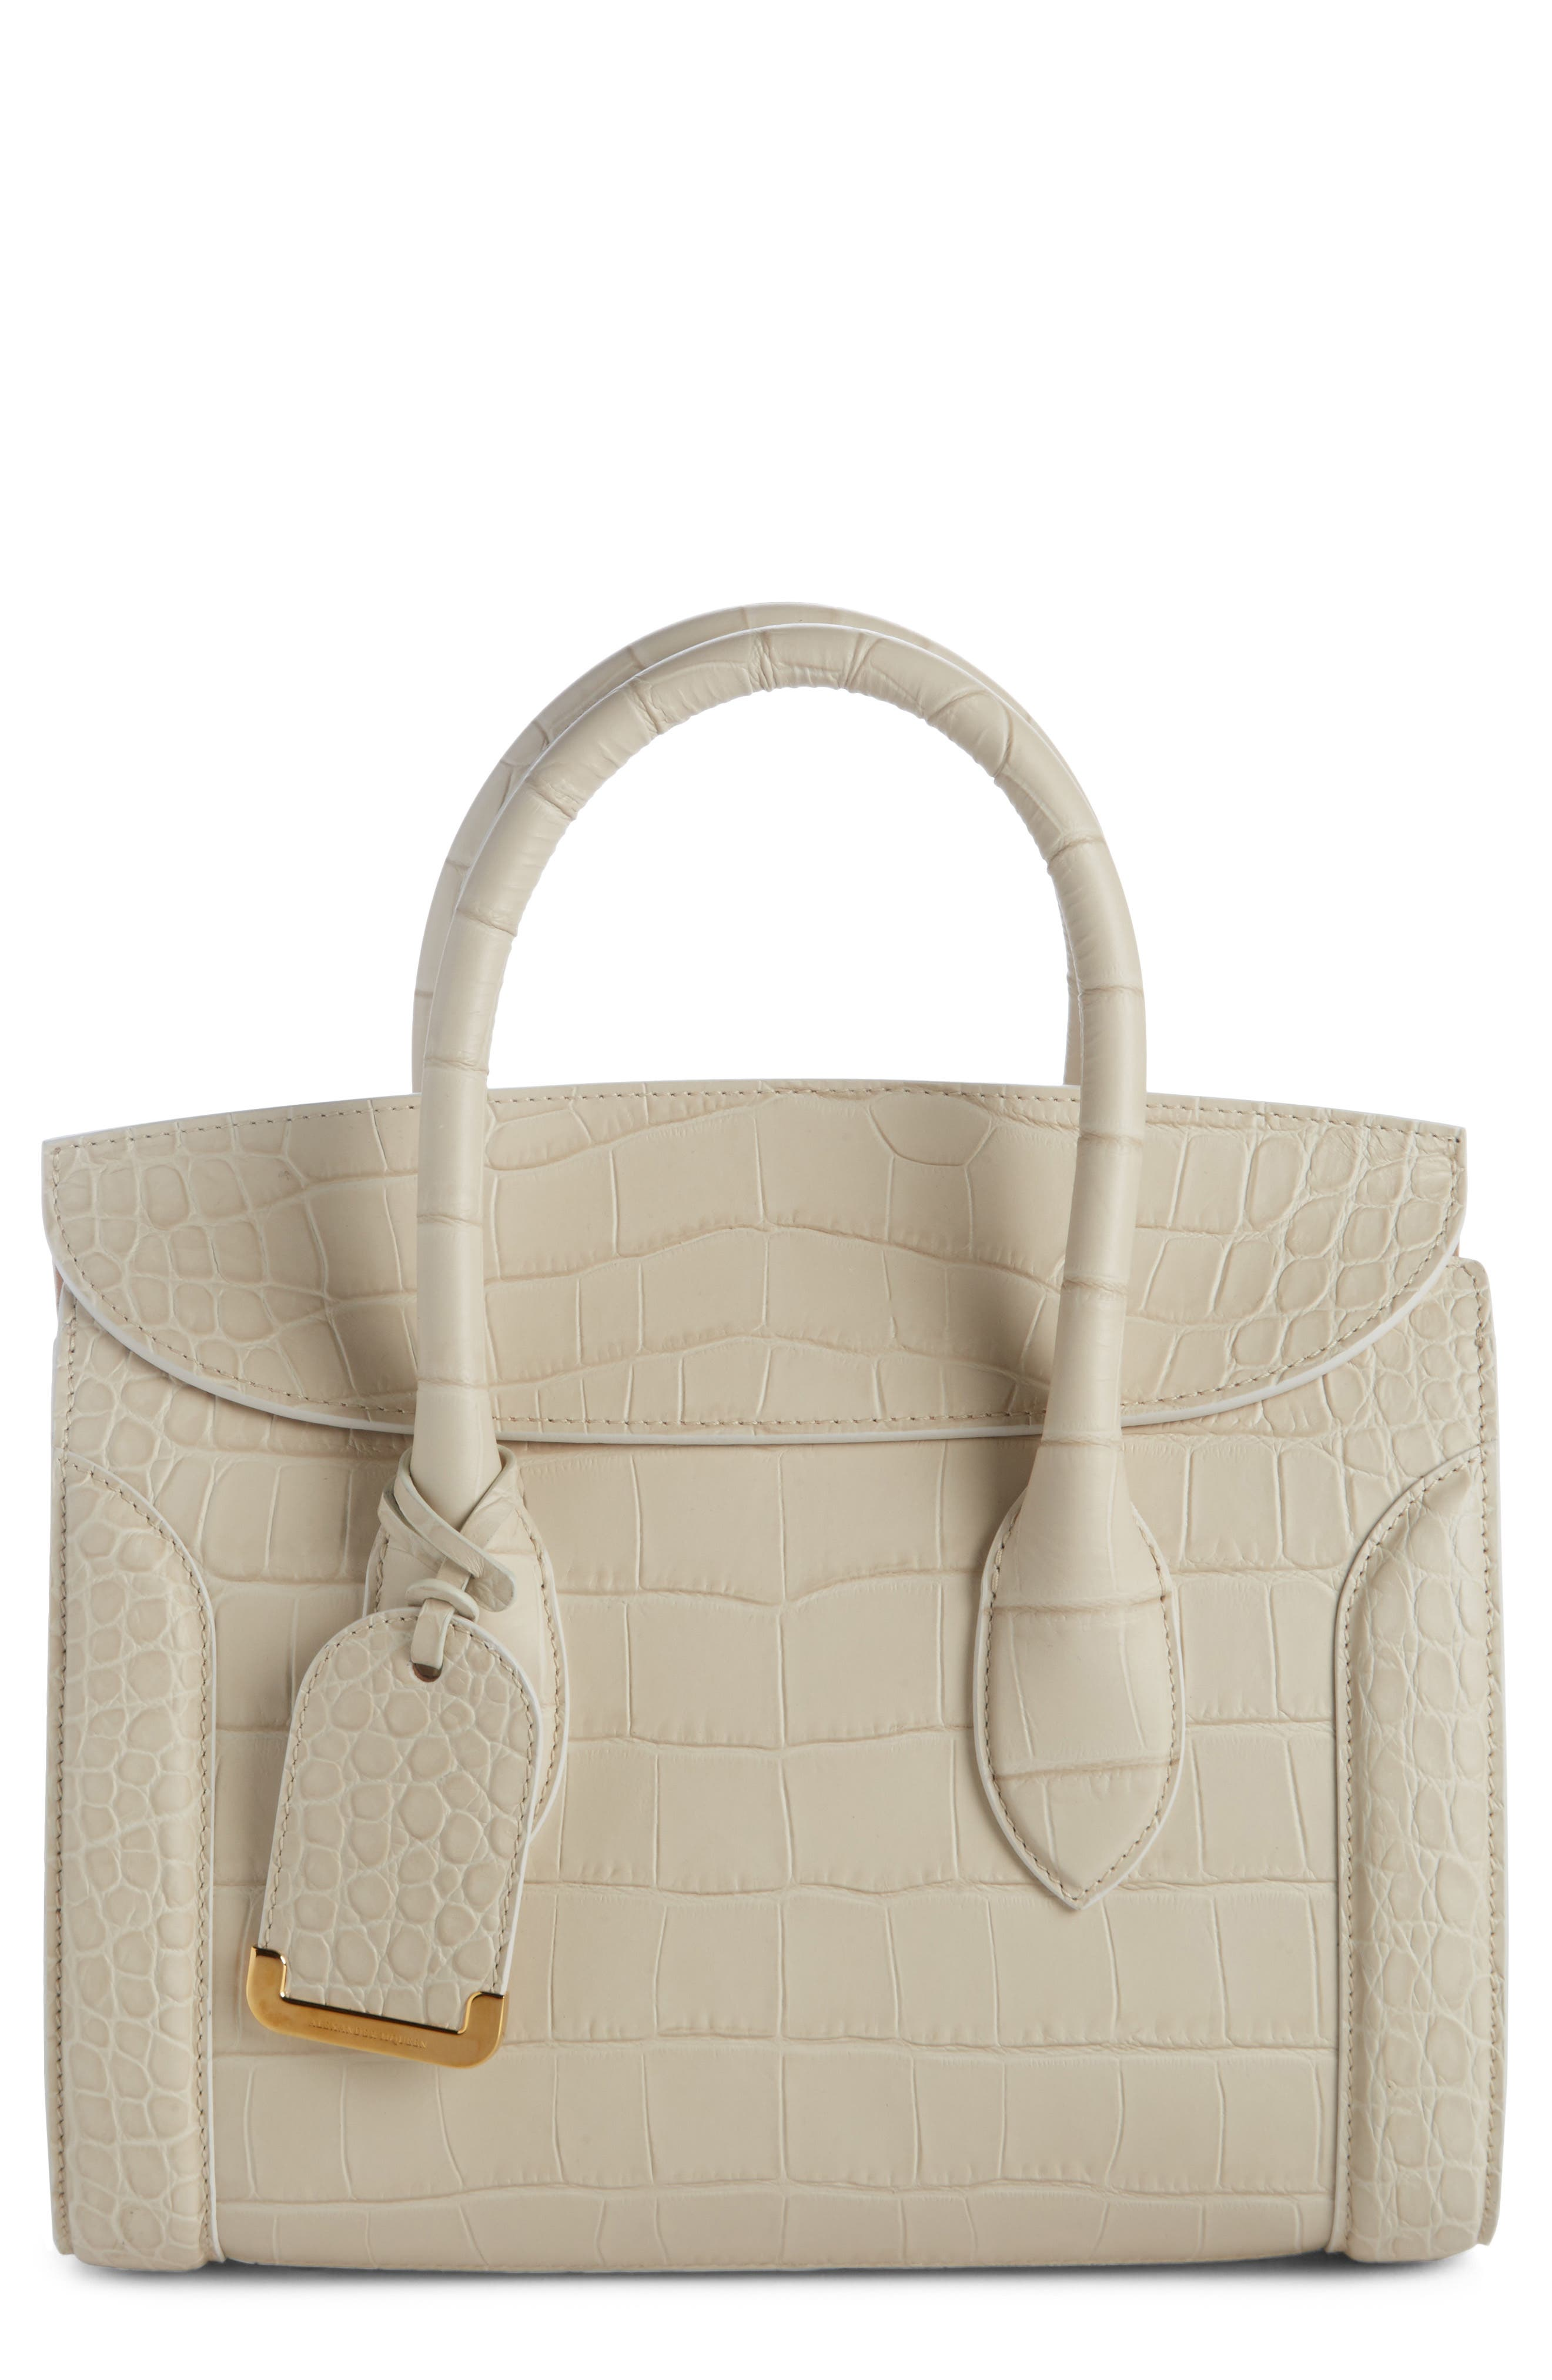 Heroine 30 Leather Satchel,                             Main thumbnail 1, color,                             White Bone